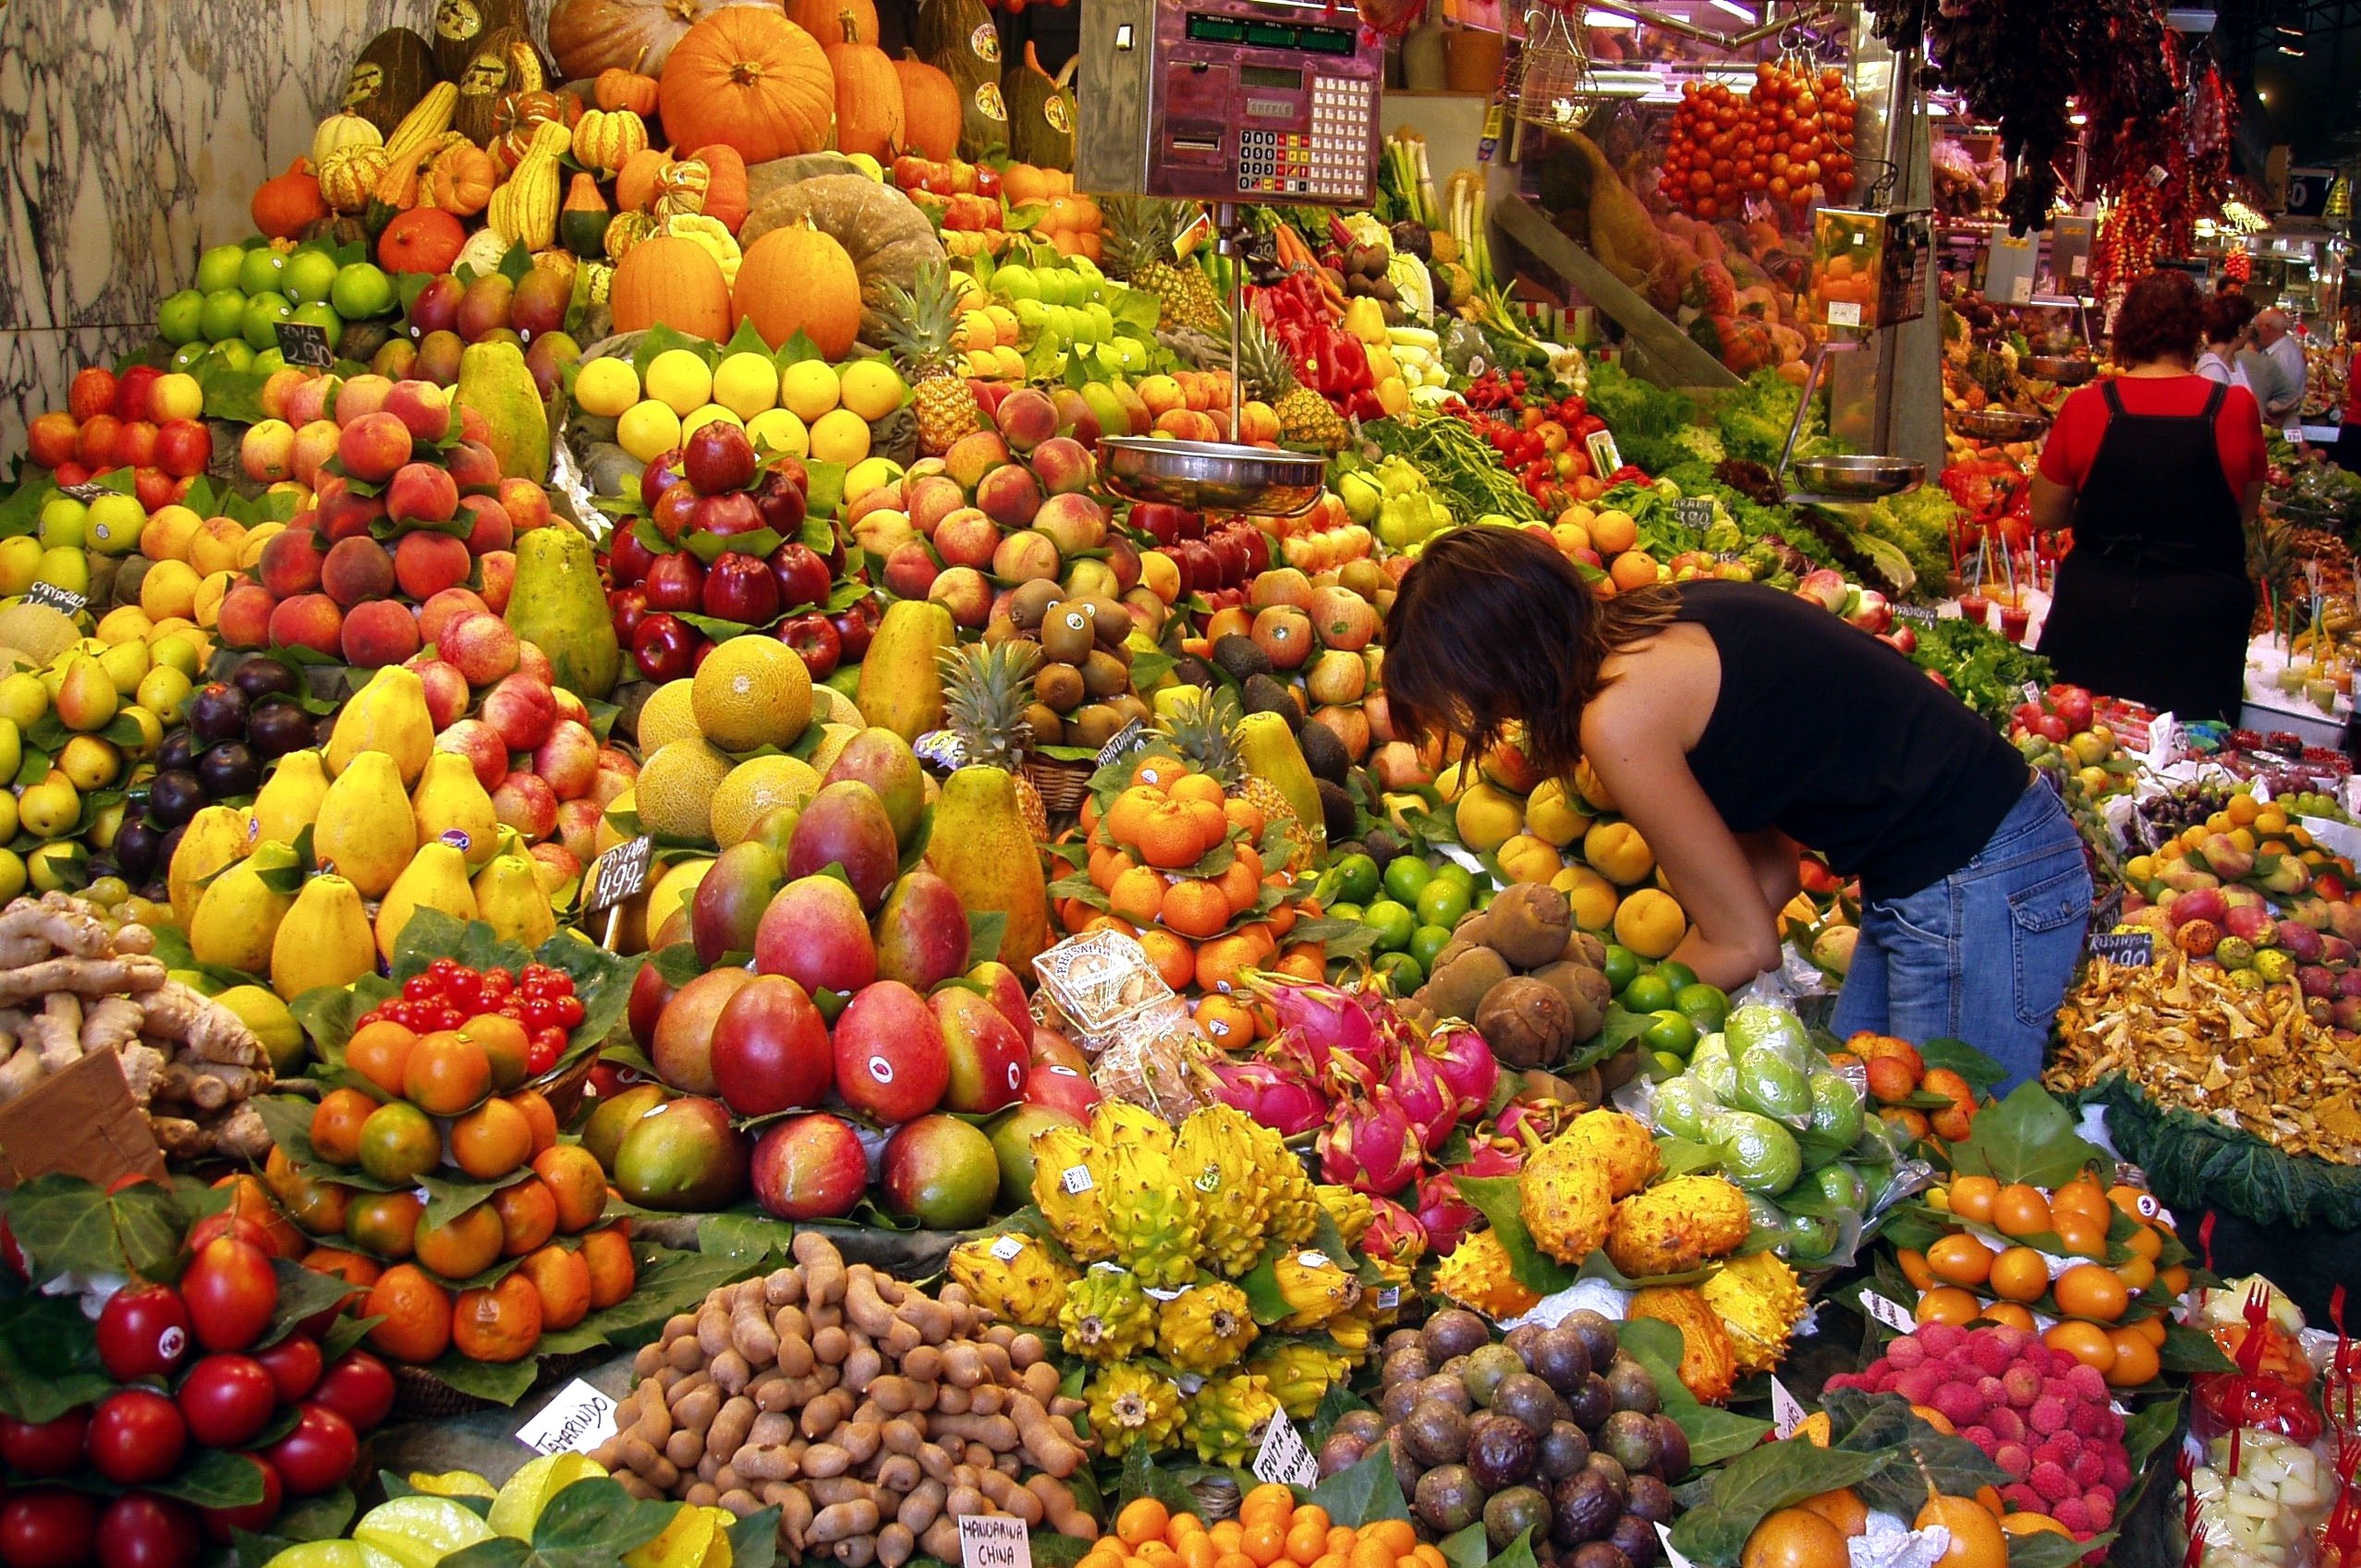 Description Fruit Stall in Barcelona Market.jpg